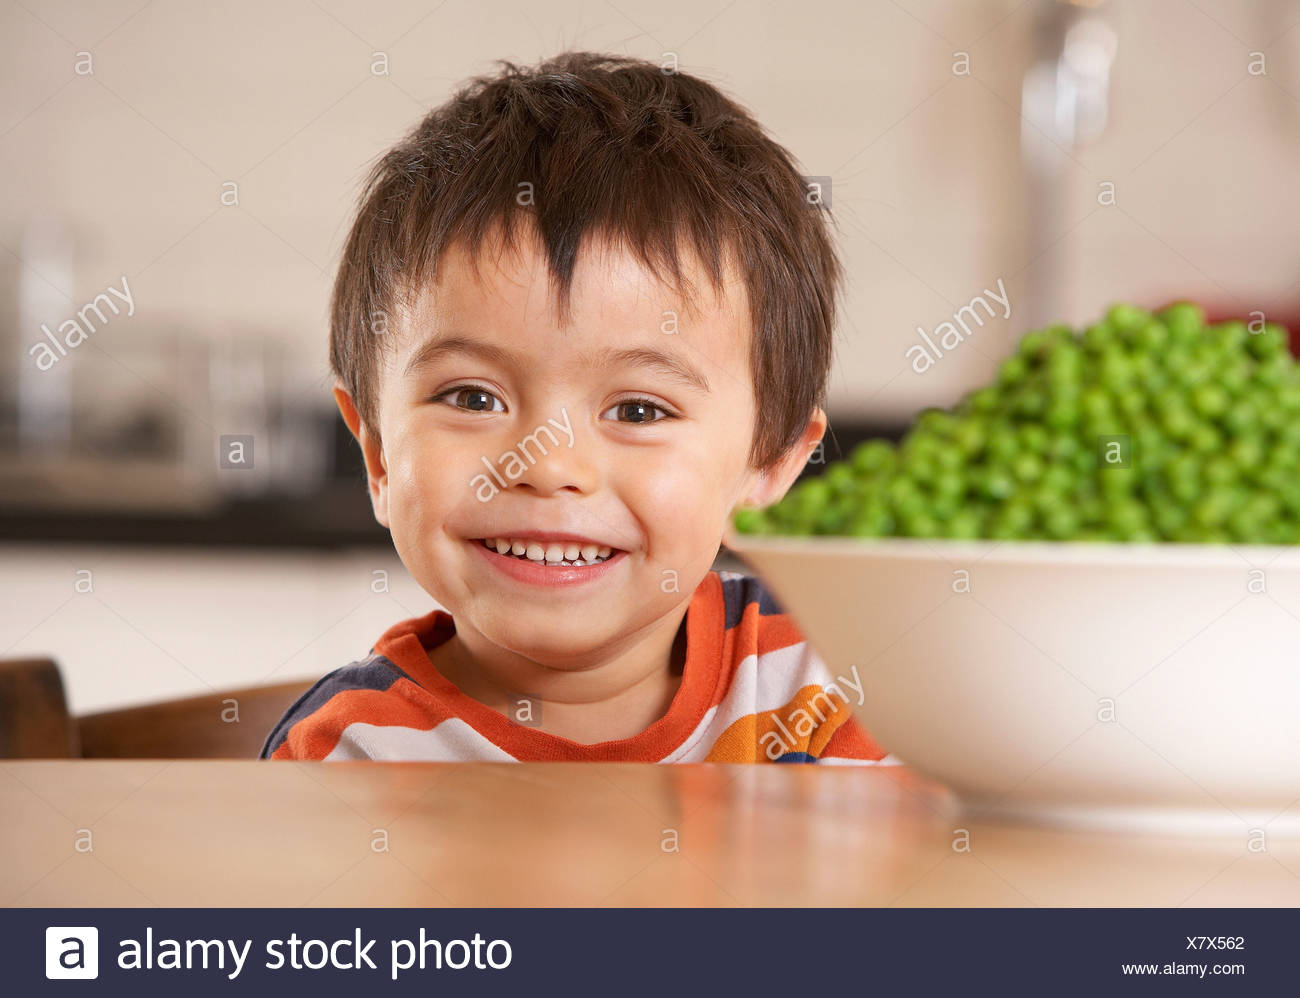 Young boy in kitchen with a bowl of green peas smiling - Stock Image